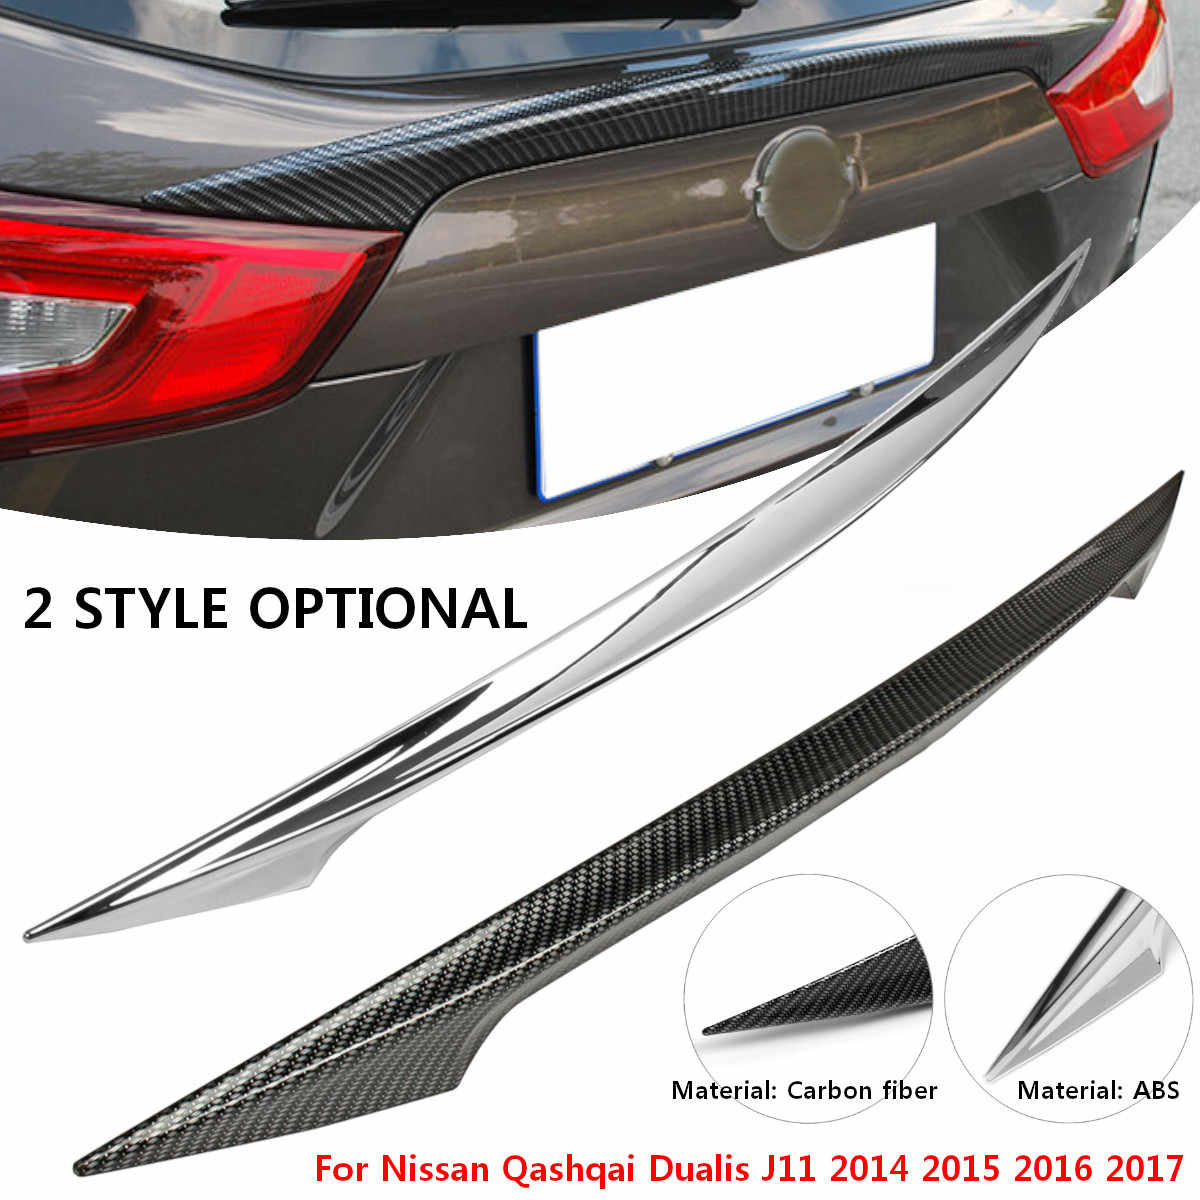 Achter Portierbekleding Achter Kofferbak Spoiler Cover Sticker Wing Styling voor Nissan Qashqai Dualis J11 2014 2015 2016 2017